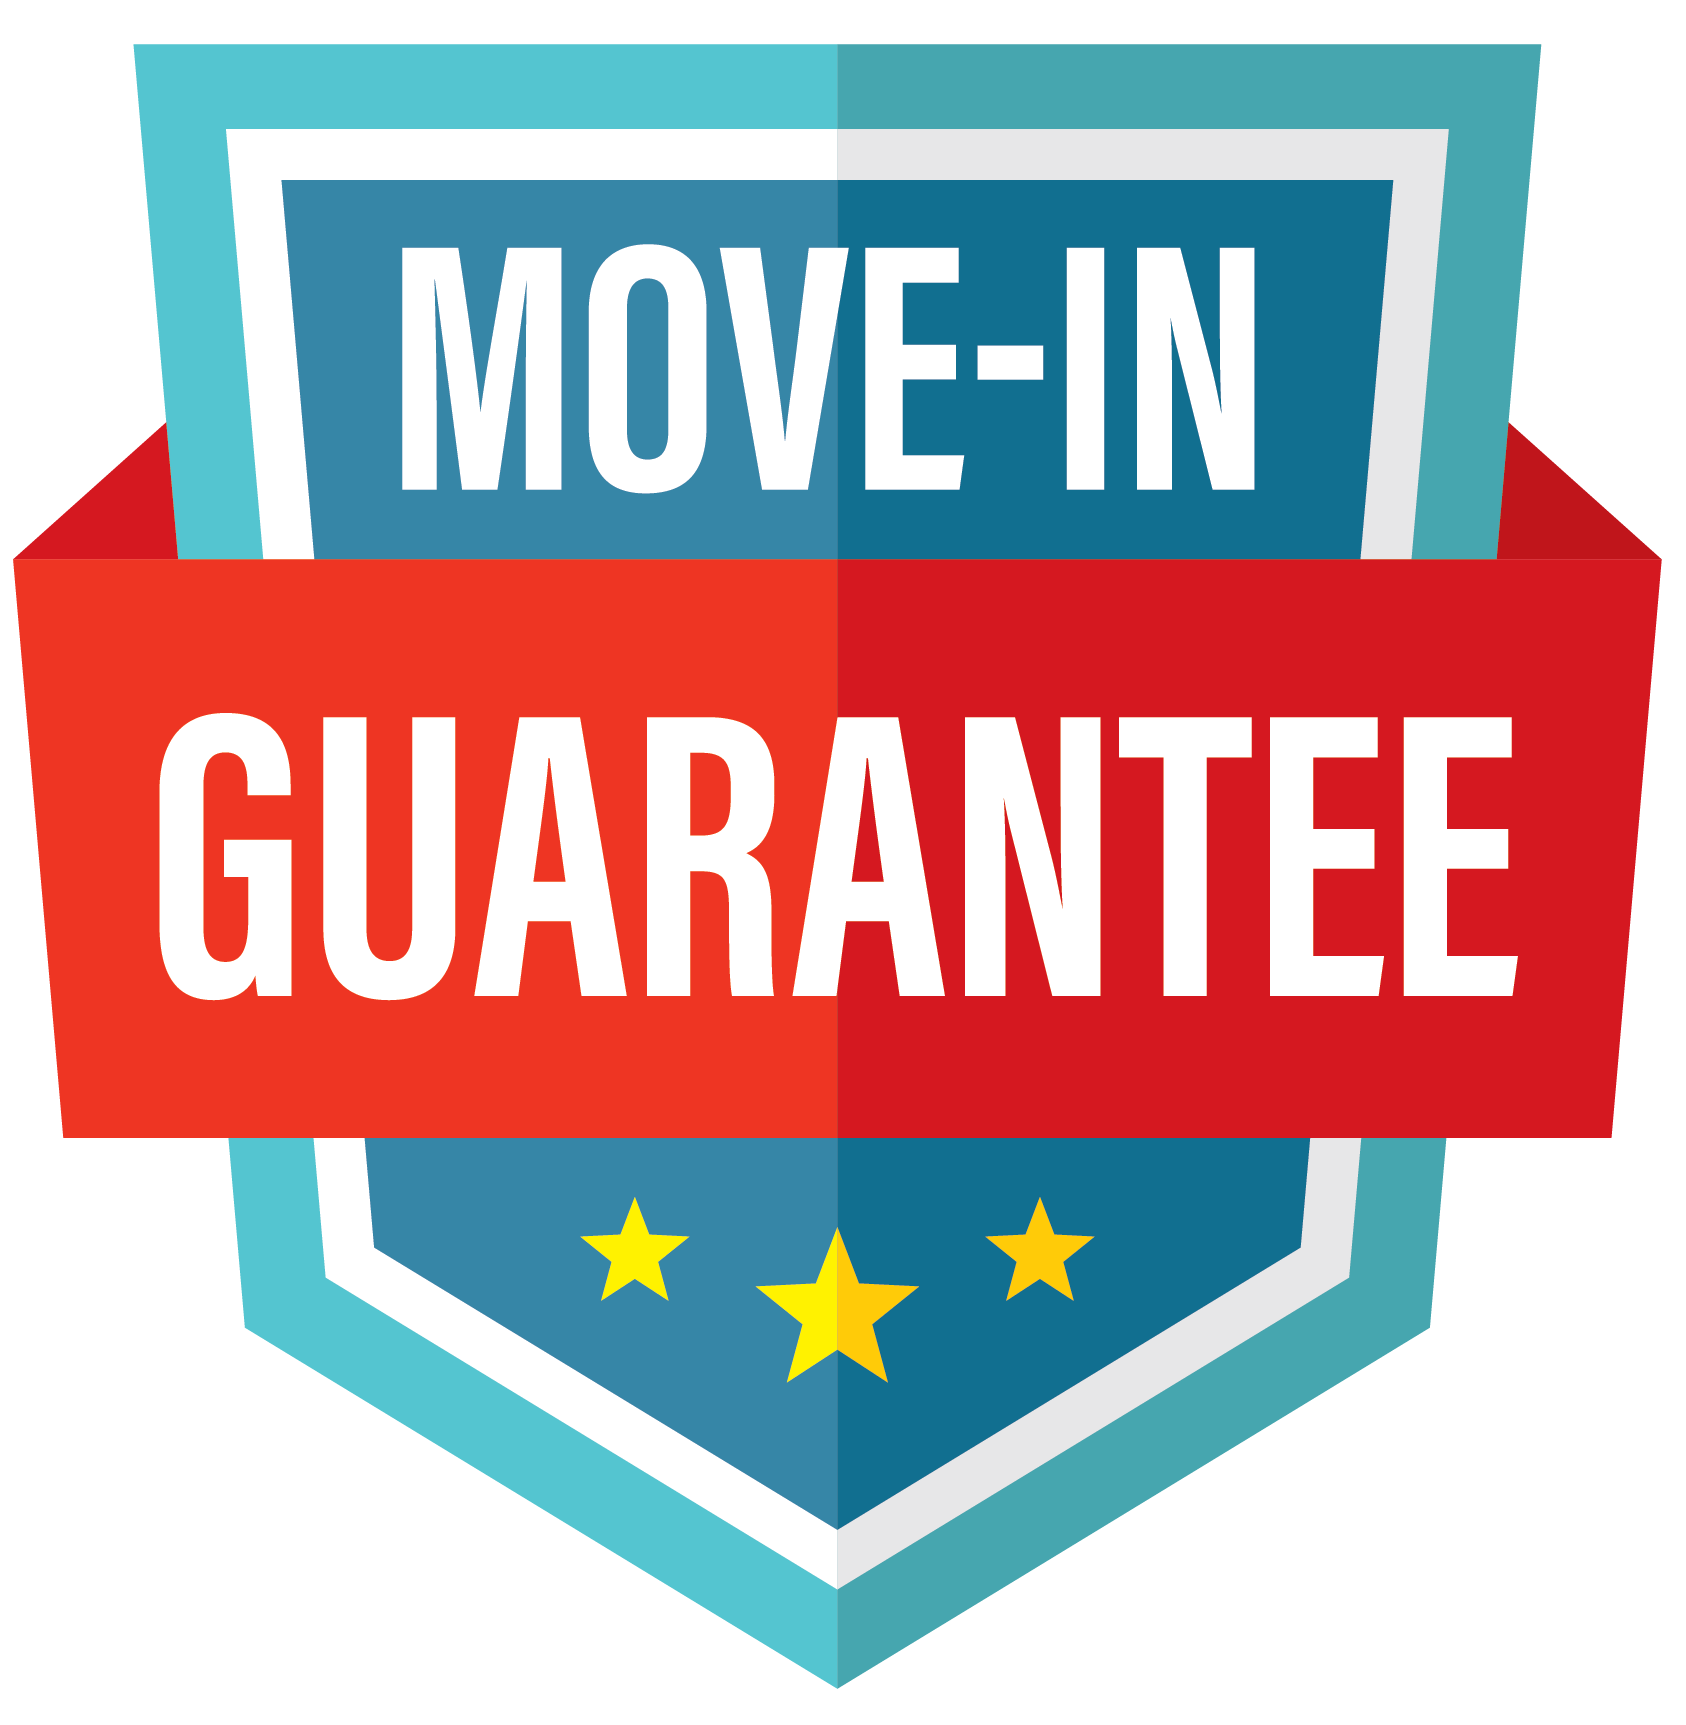 Our Move-In Guarantee Pledge to You